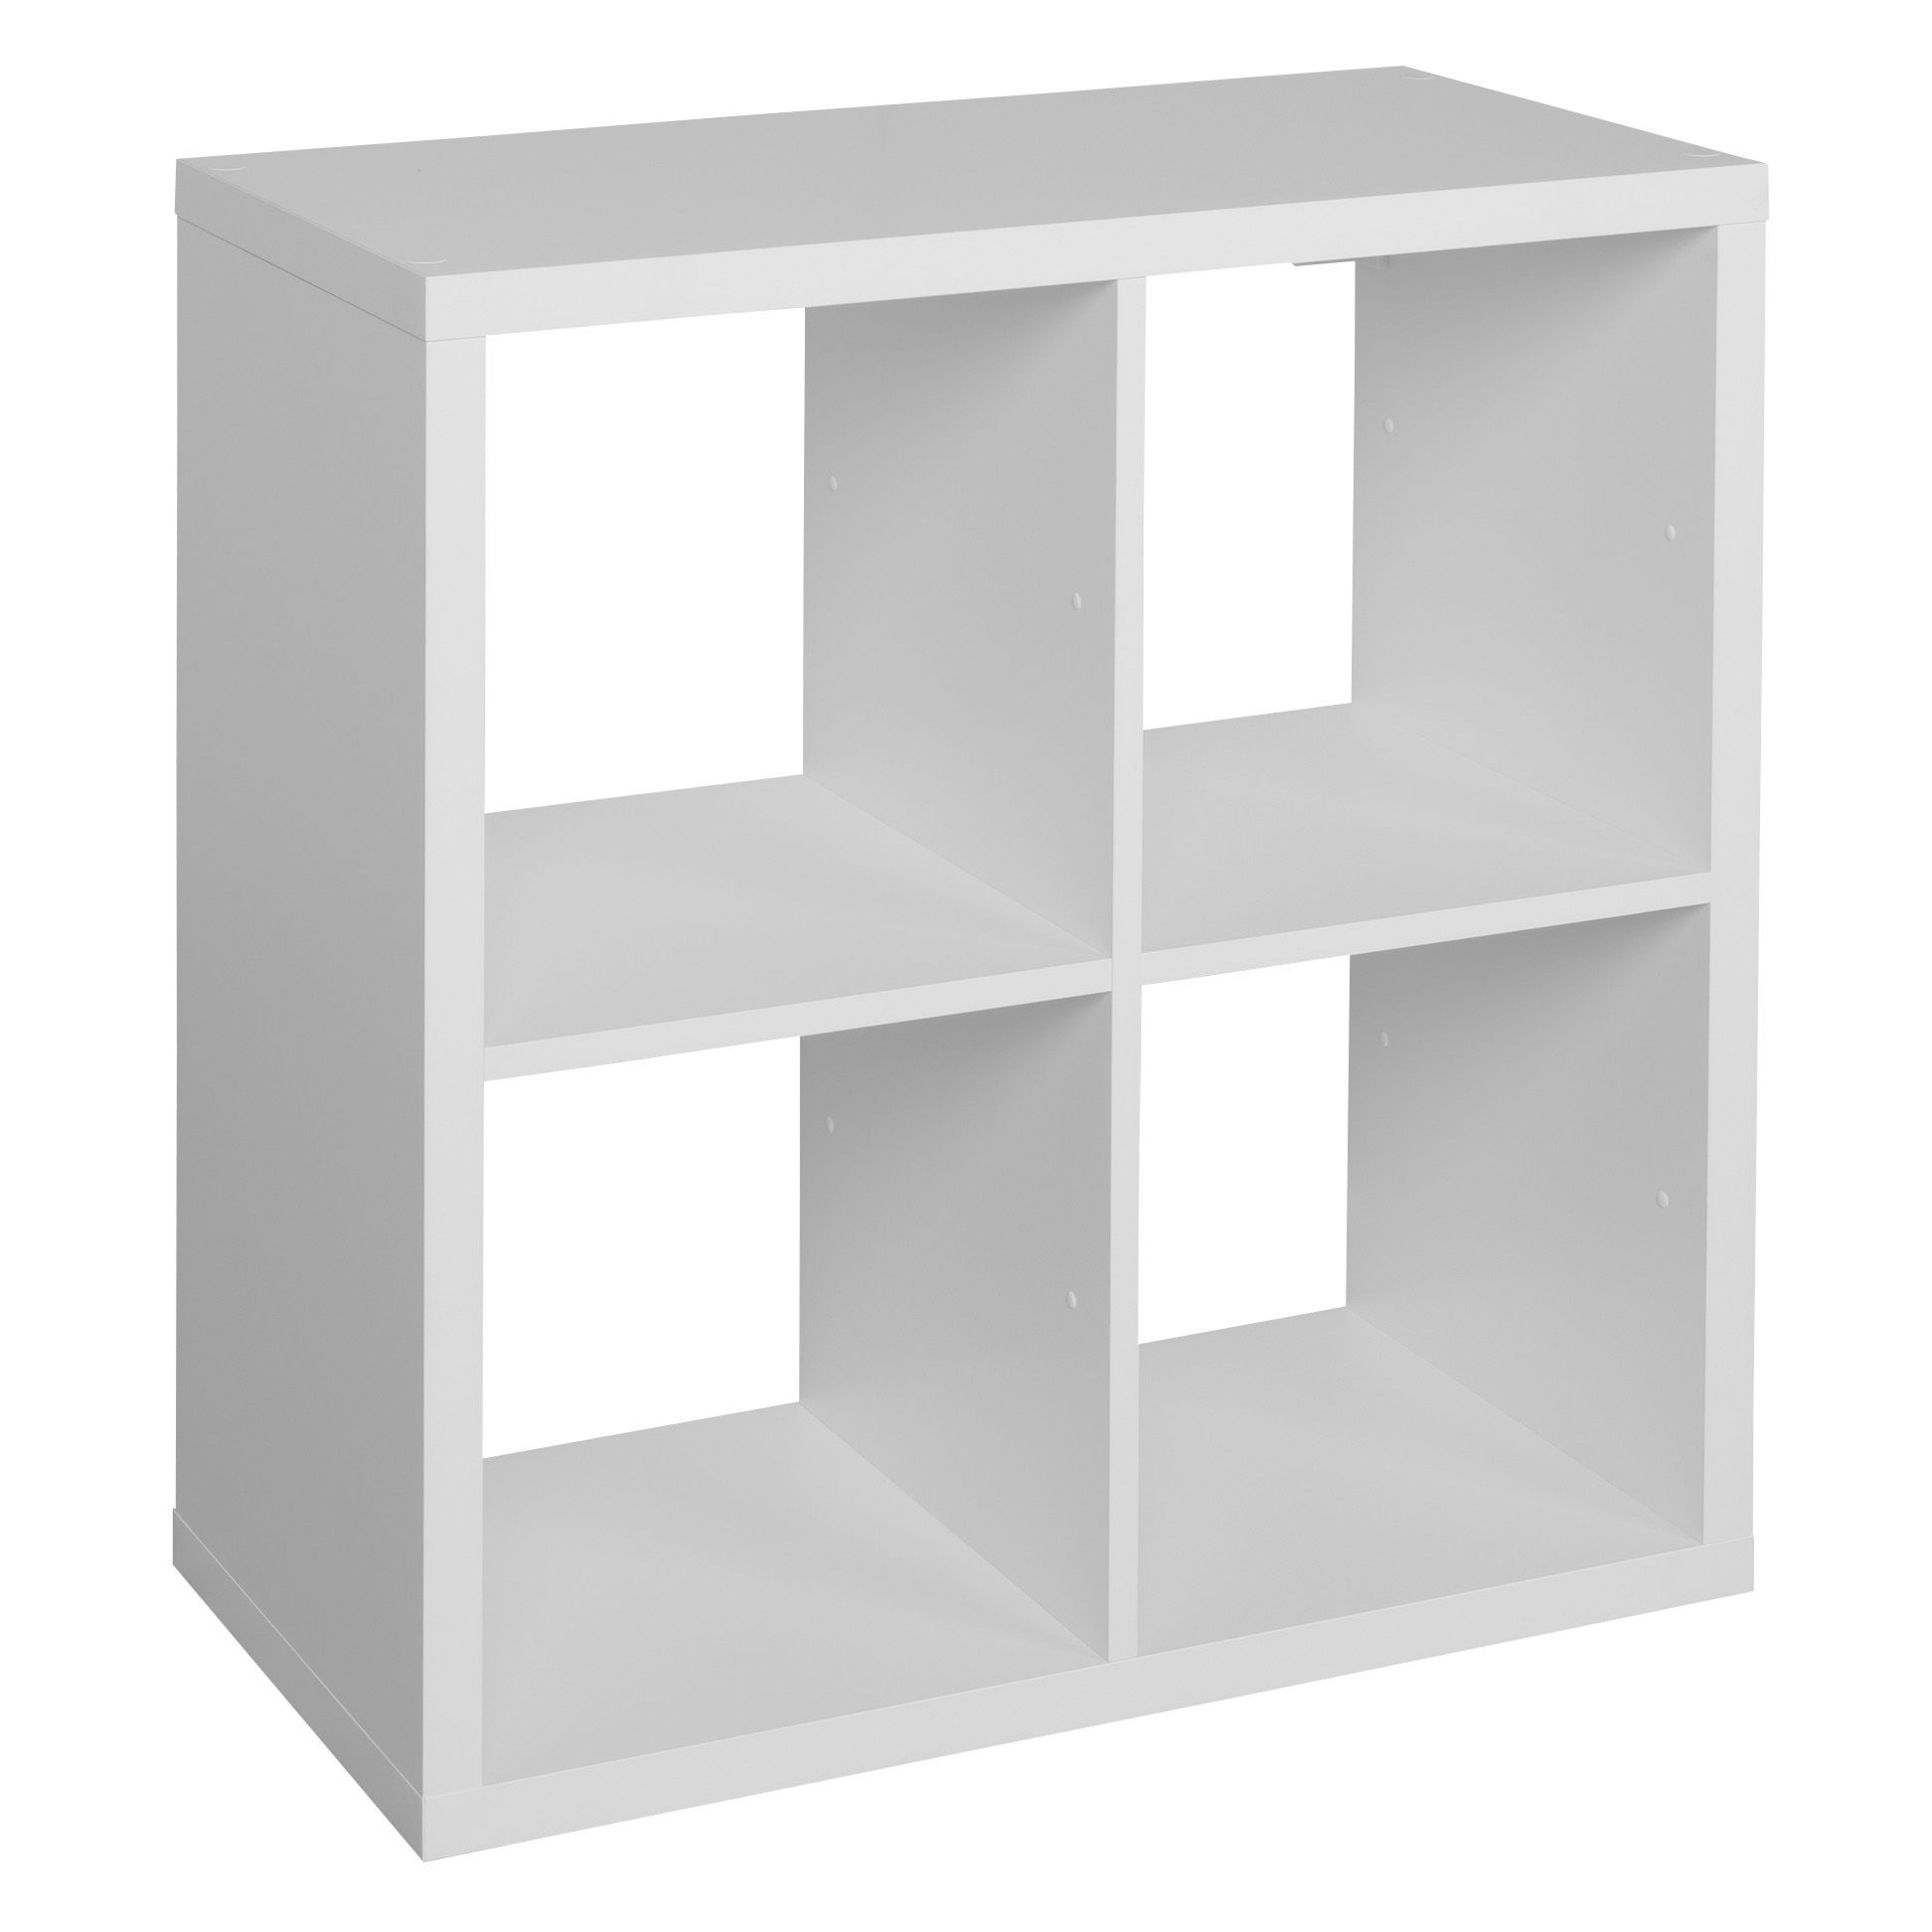 Form Mixxit White 4 Cube Shelving Unit (H)740mm (W)740mm | Departments |  DIY at B&Q